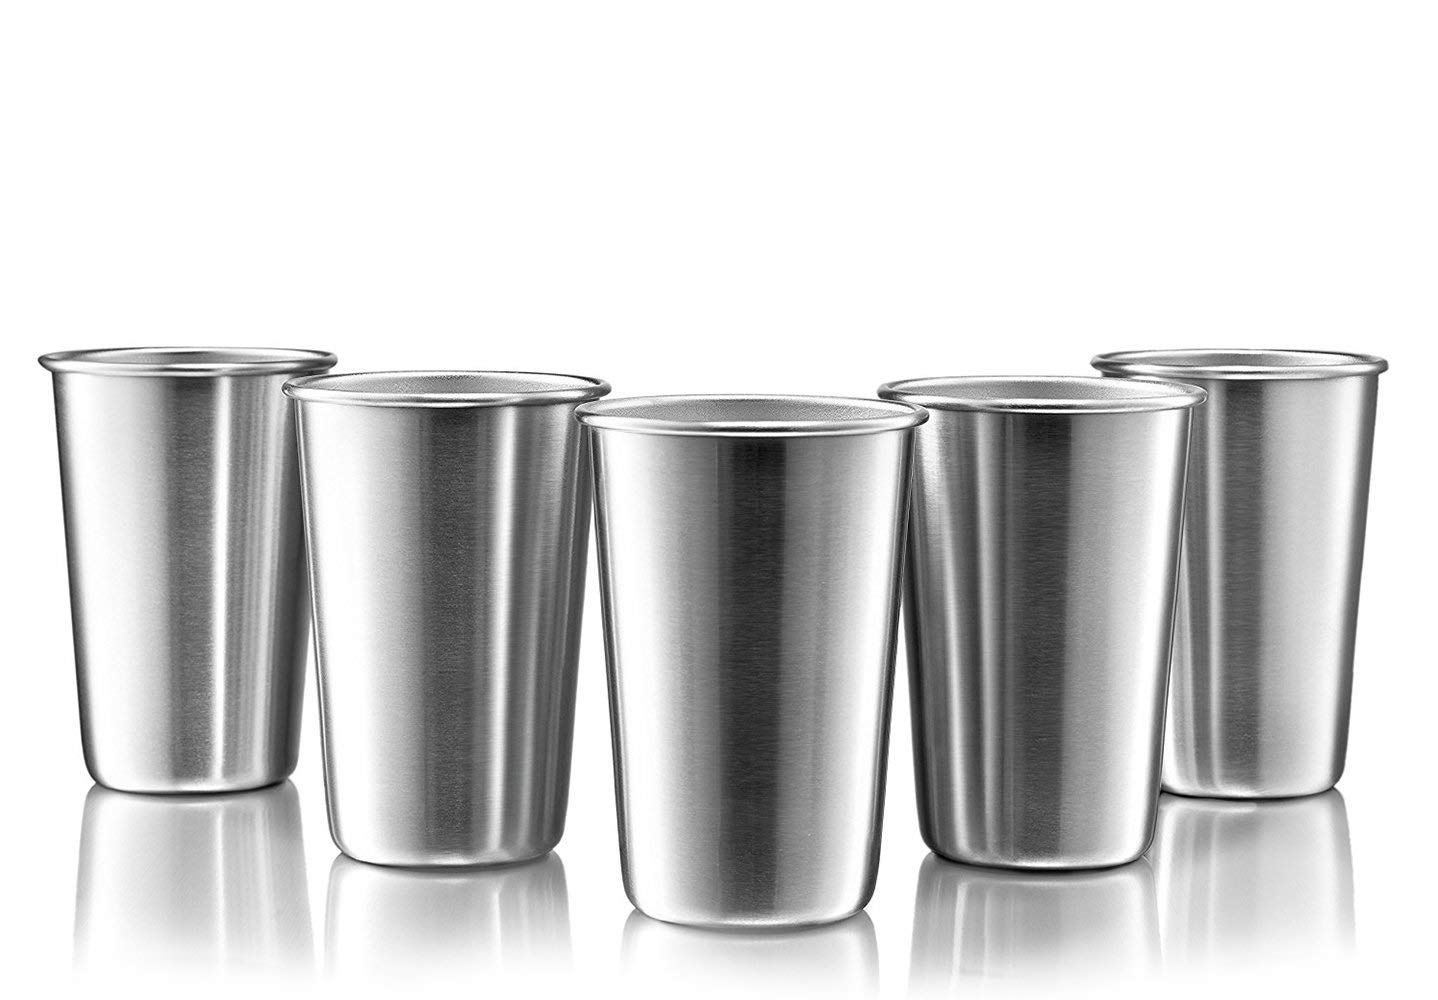 Modern Innovations Stainless Steel Pint Cups, Set of 5, 16 Oz Metal Cups For Drinking Made of Food Grade Quality, BPA Free, Shatterproof SS Tumblers Perfect for Camping, Picnics, Indoor & Outdoor Use MI 1060